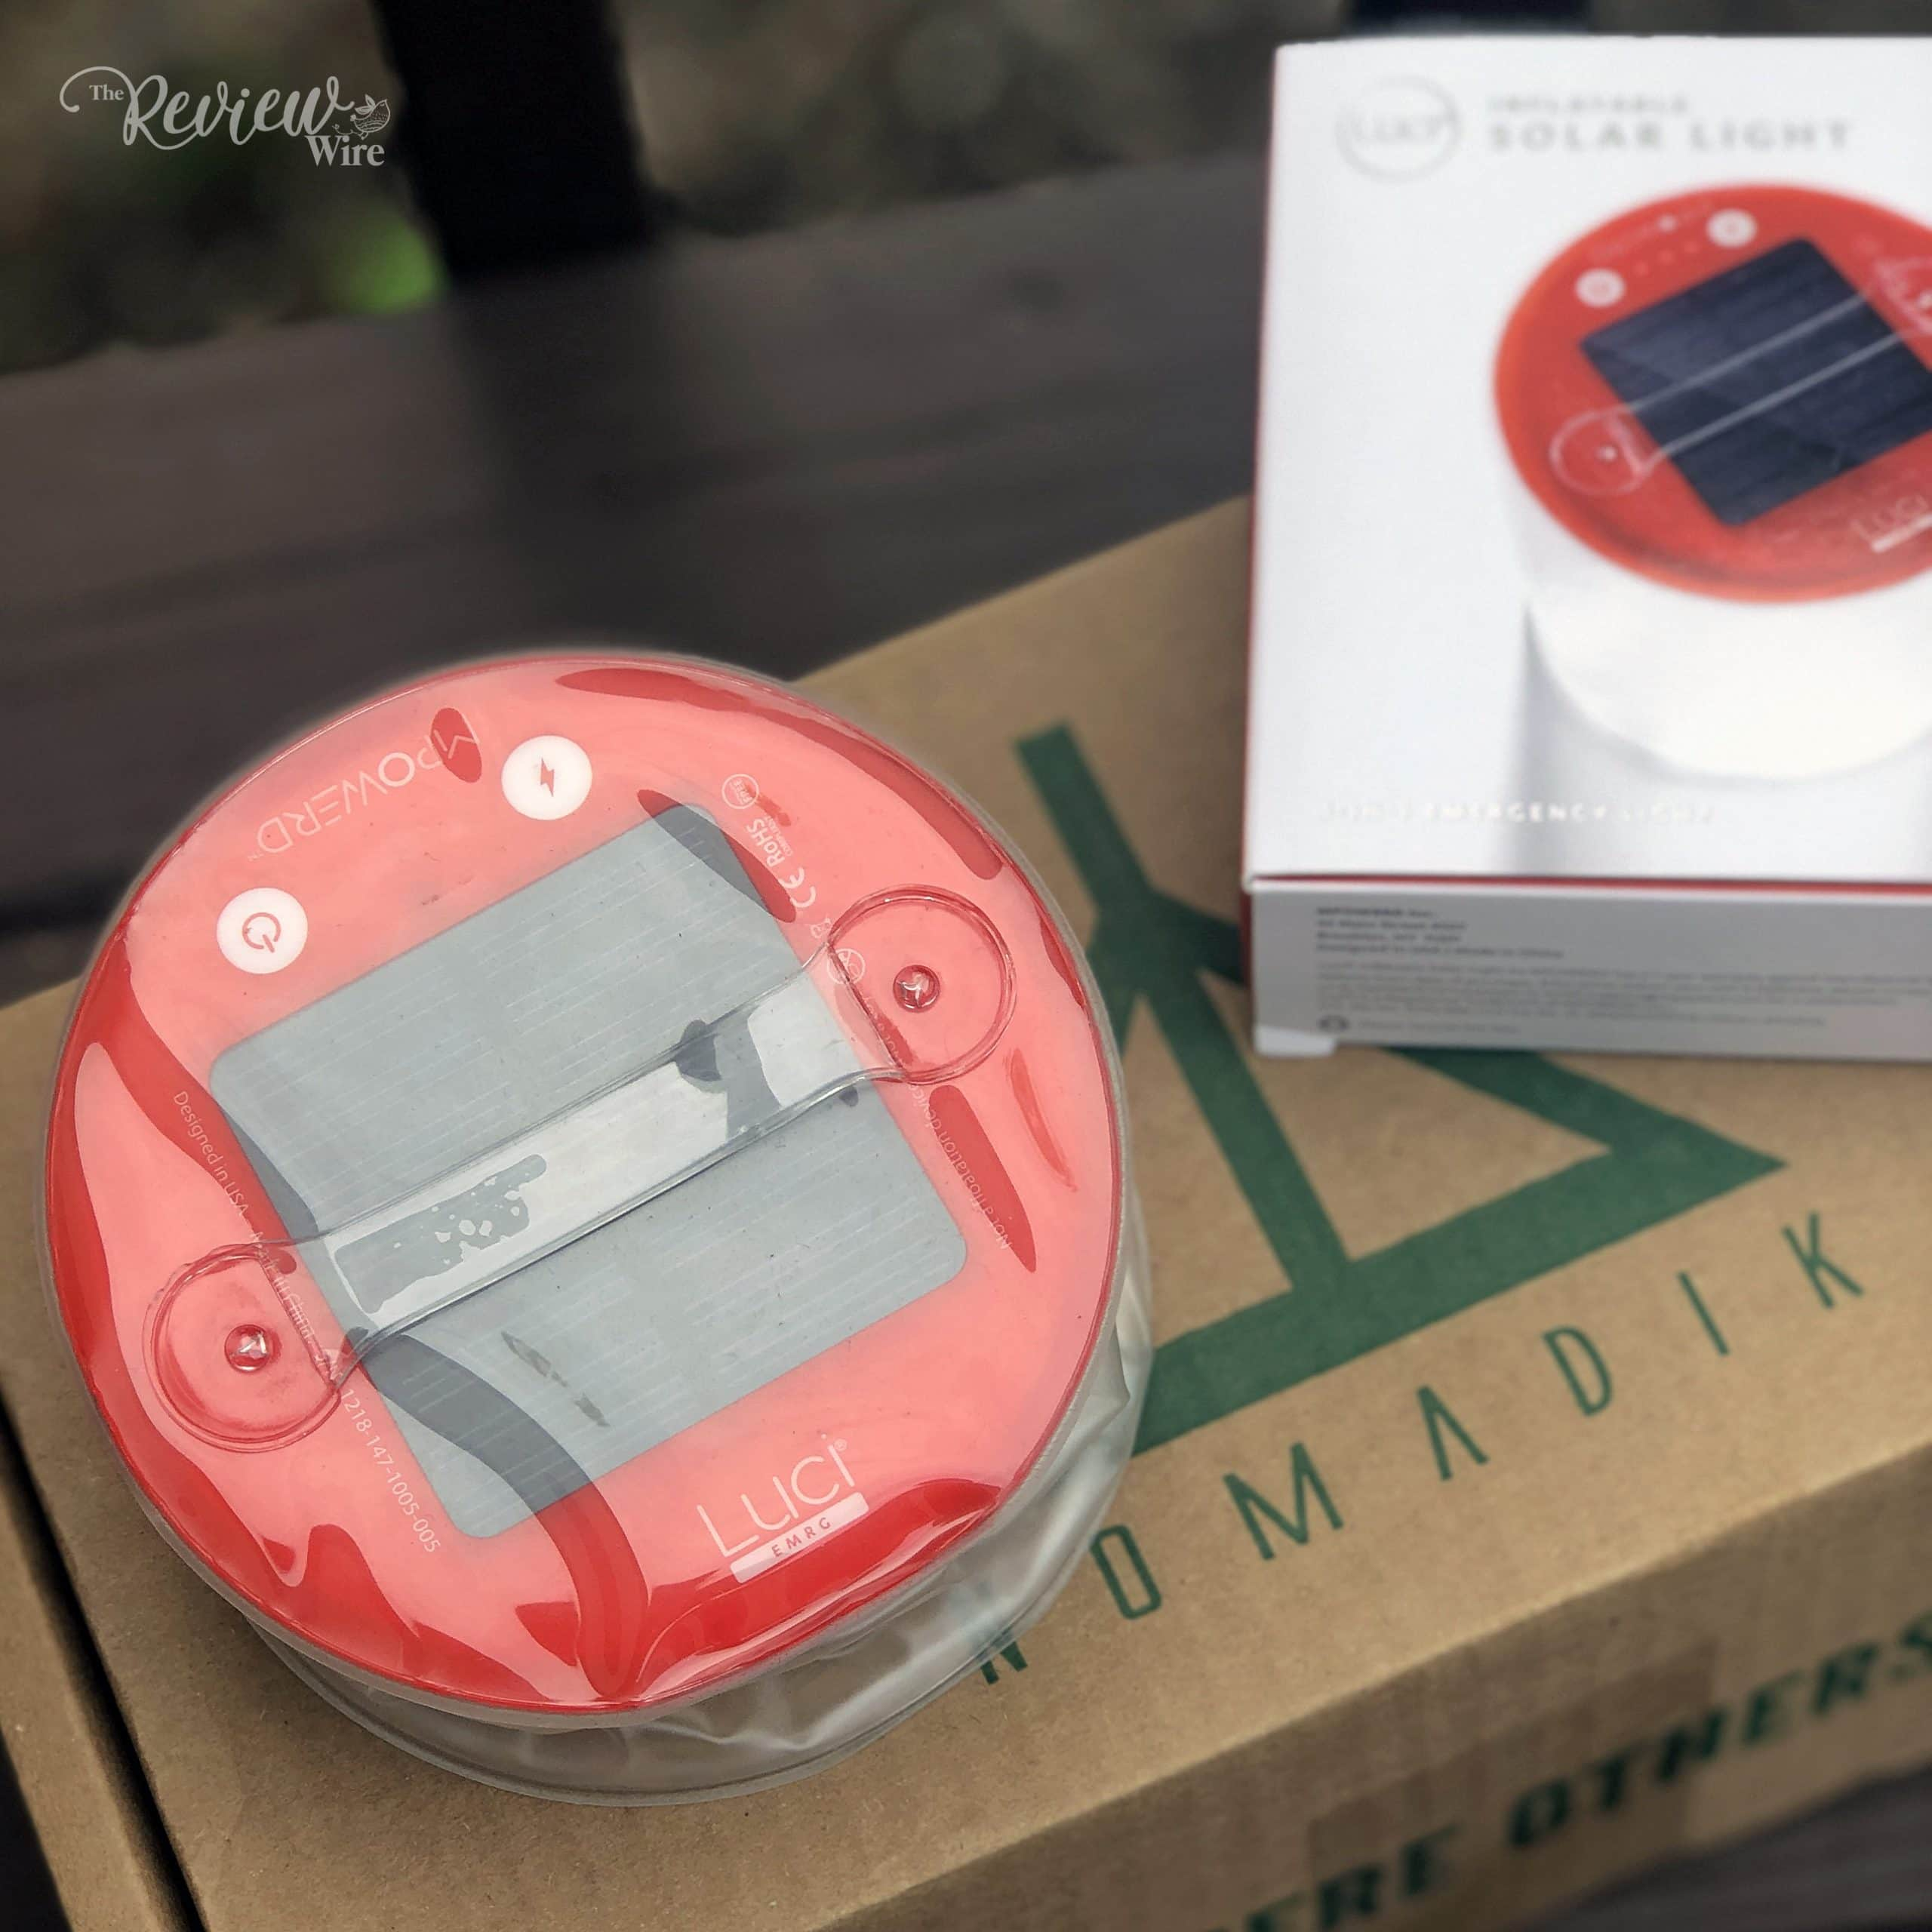 The Review Wire - The Nomadik - MPOWERD Luci EMRG